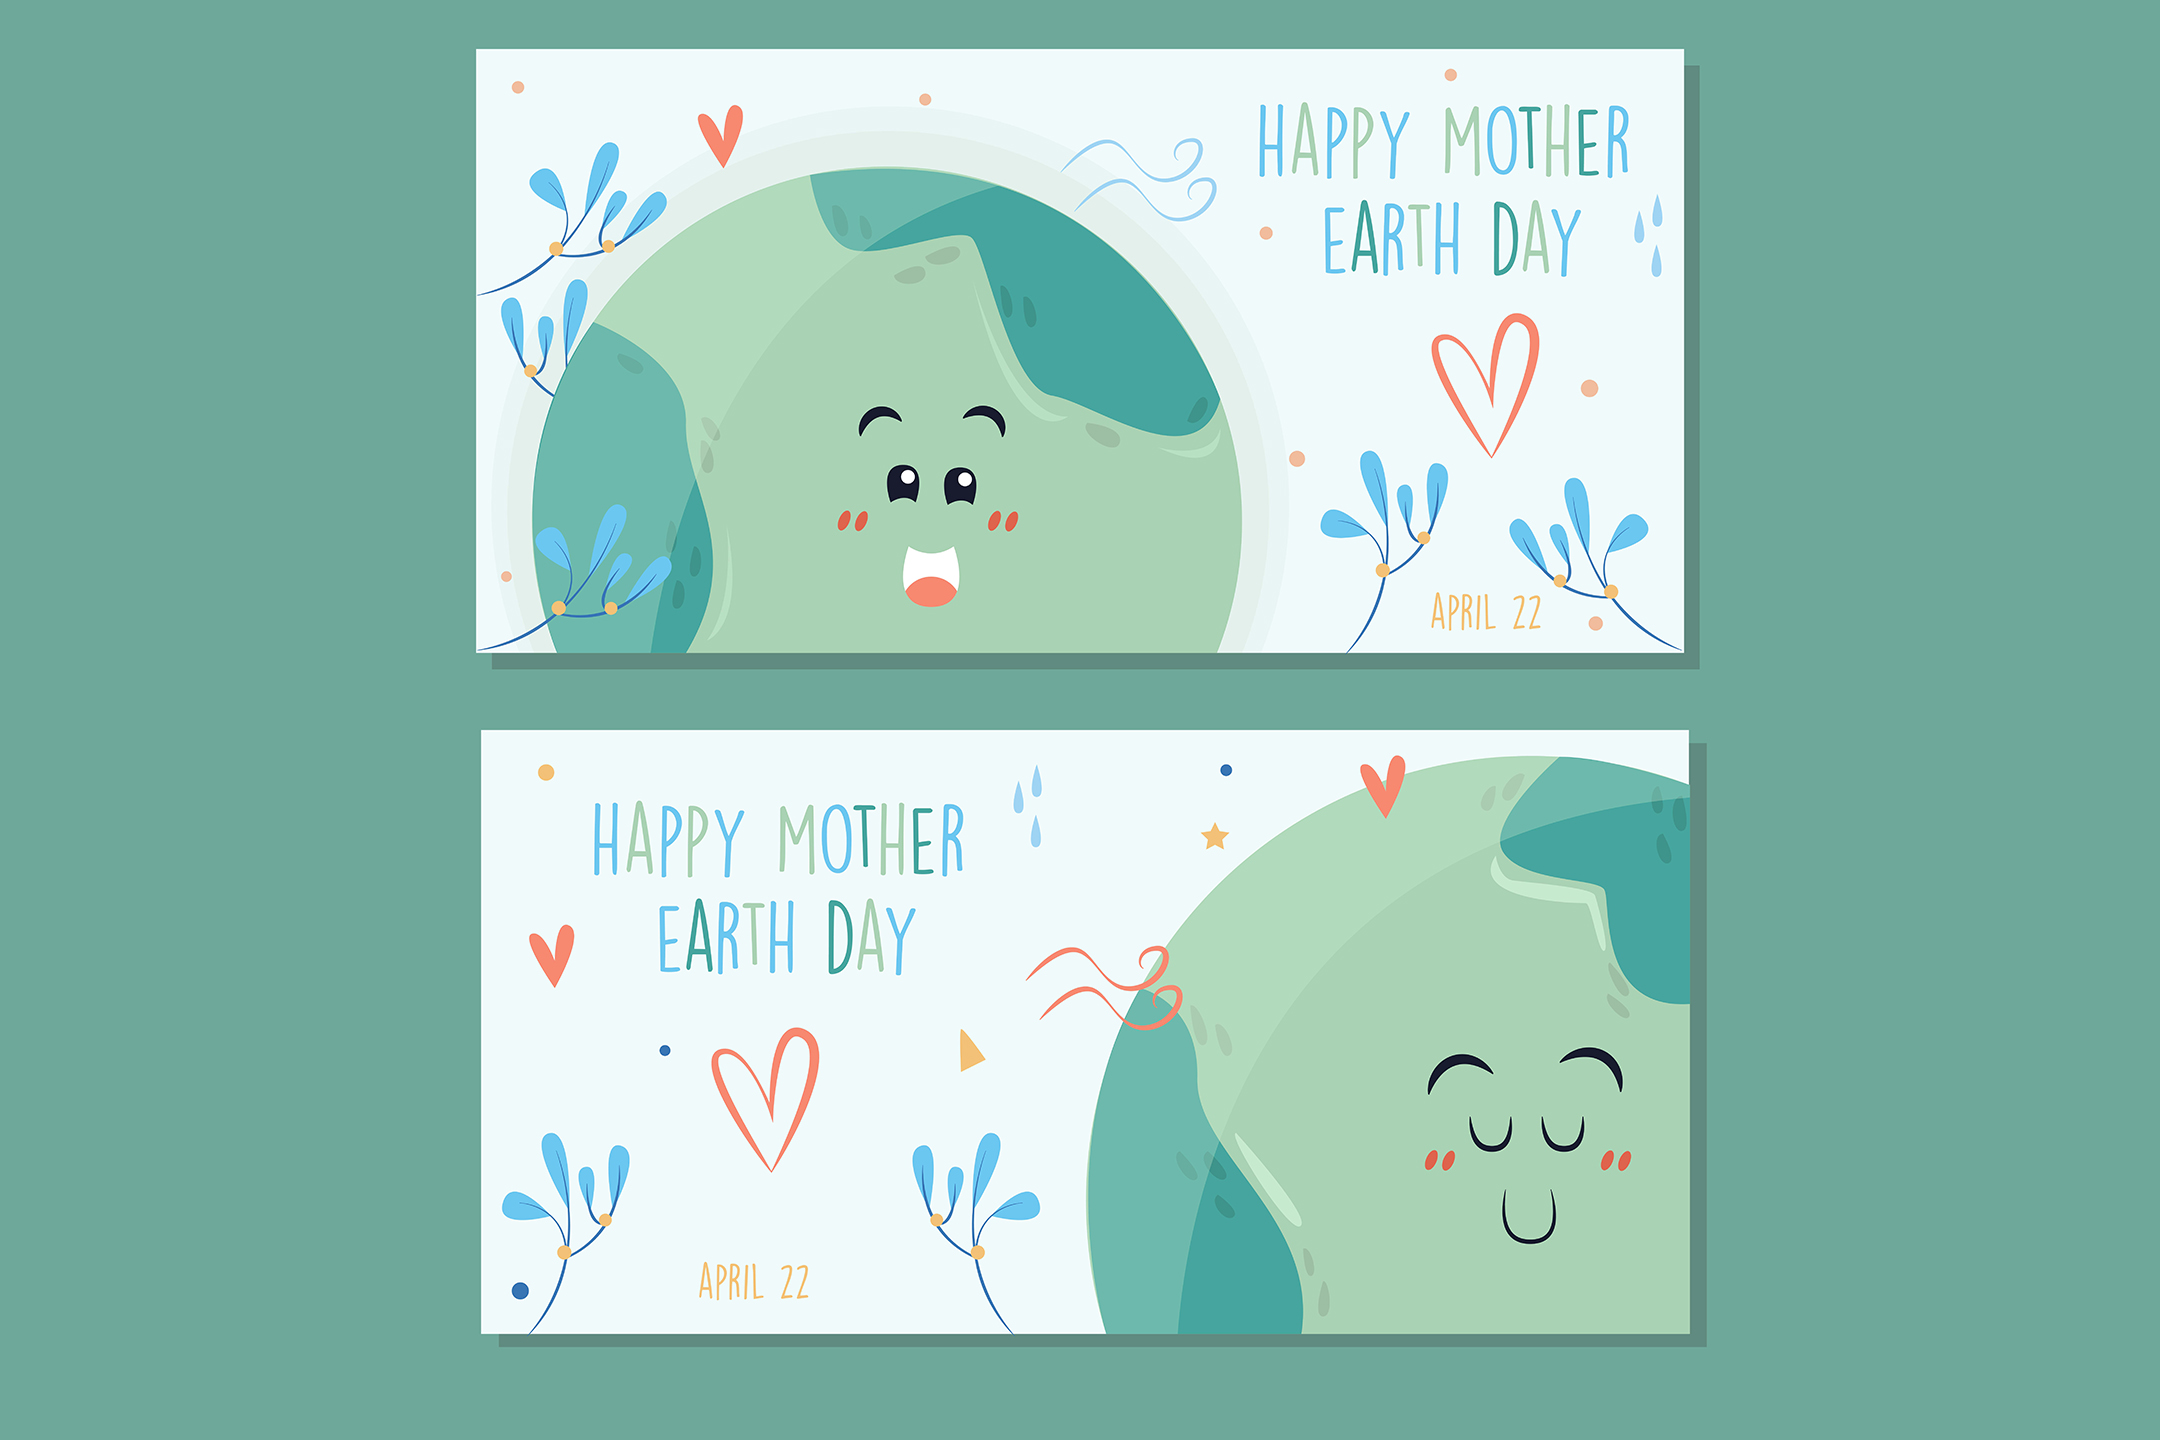 Download Free Mother Earth Day Hand Drawn Banner Pack Graphic By Aprlmp276 for Cricut Explore, Silhouette and other cutting machines.